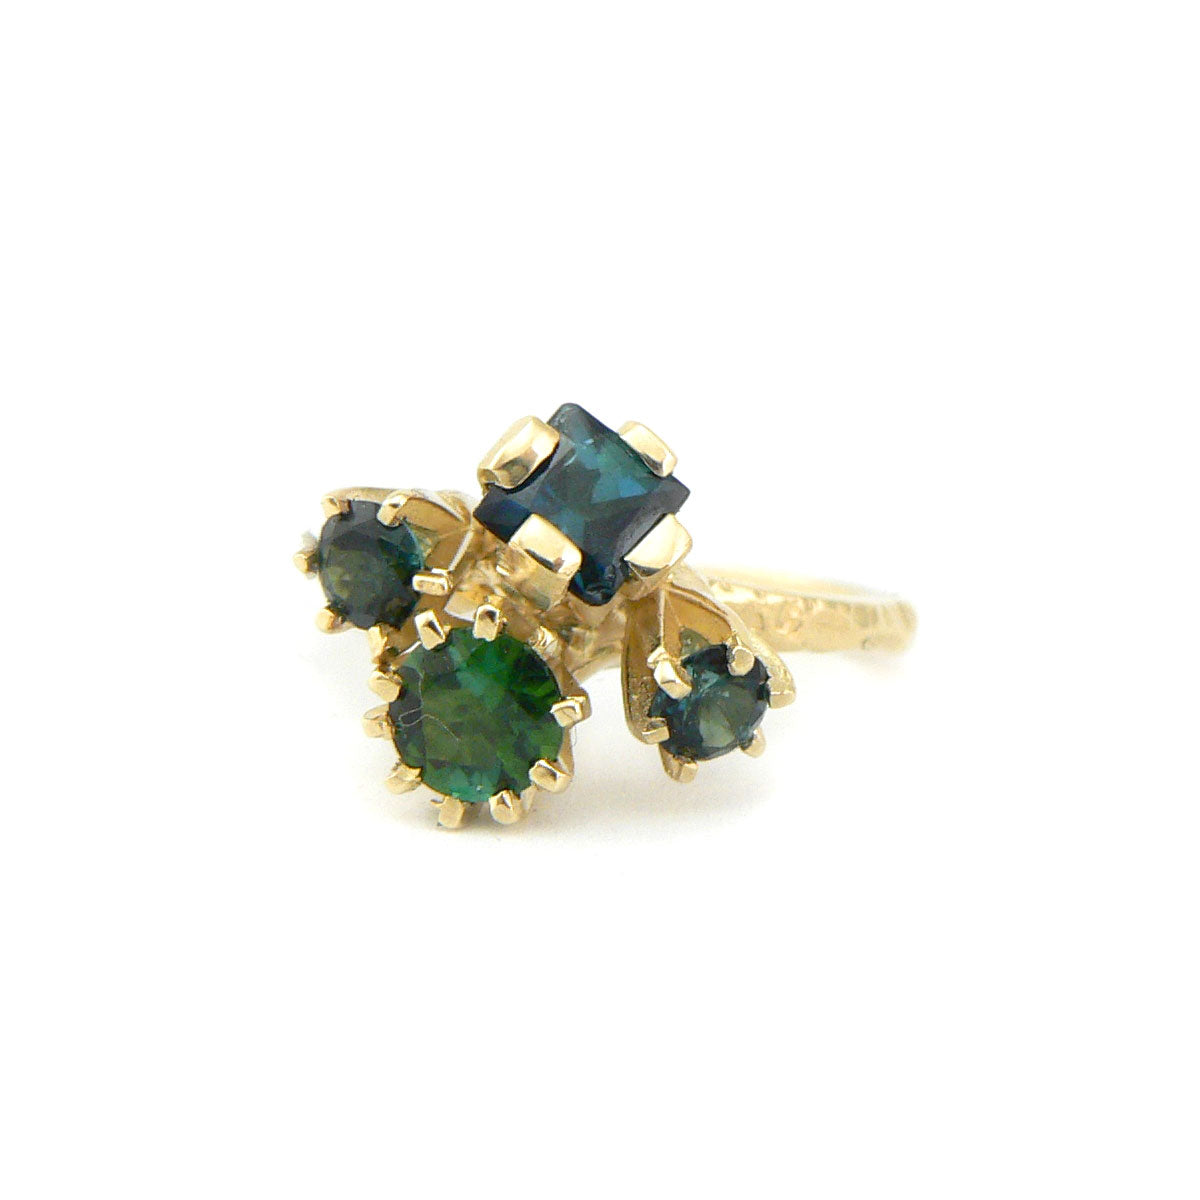 Green tourmaline cluster ring in yellow gold